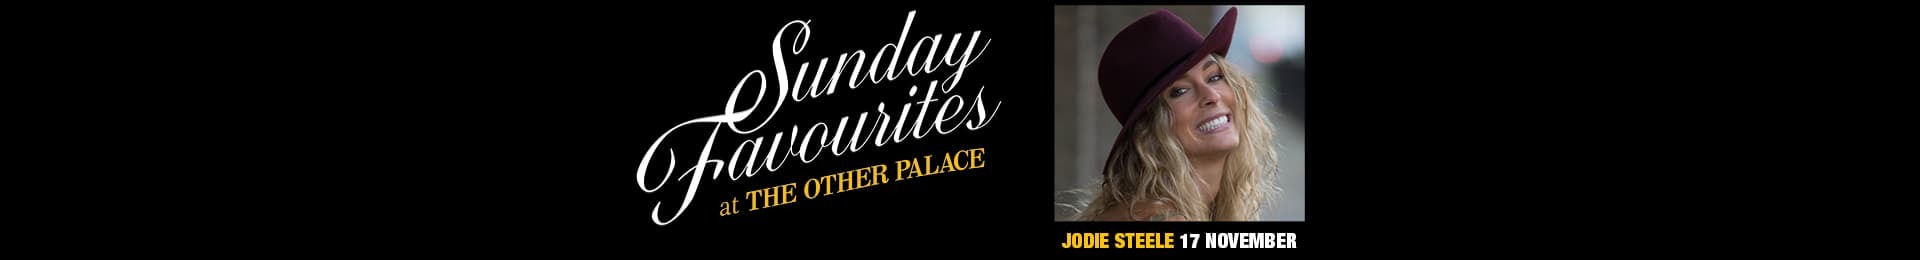 Sunday Favourites: Jodie Steele banner image